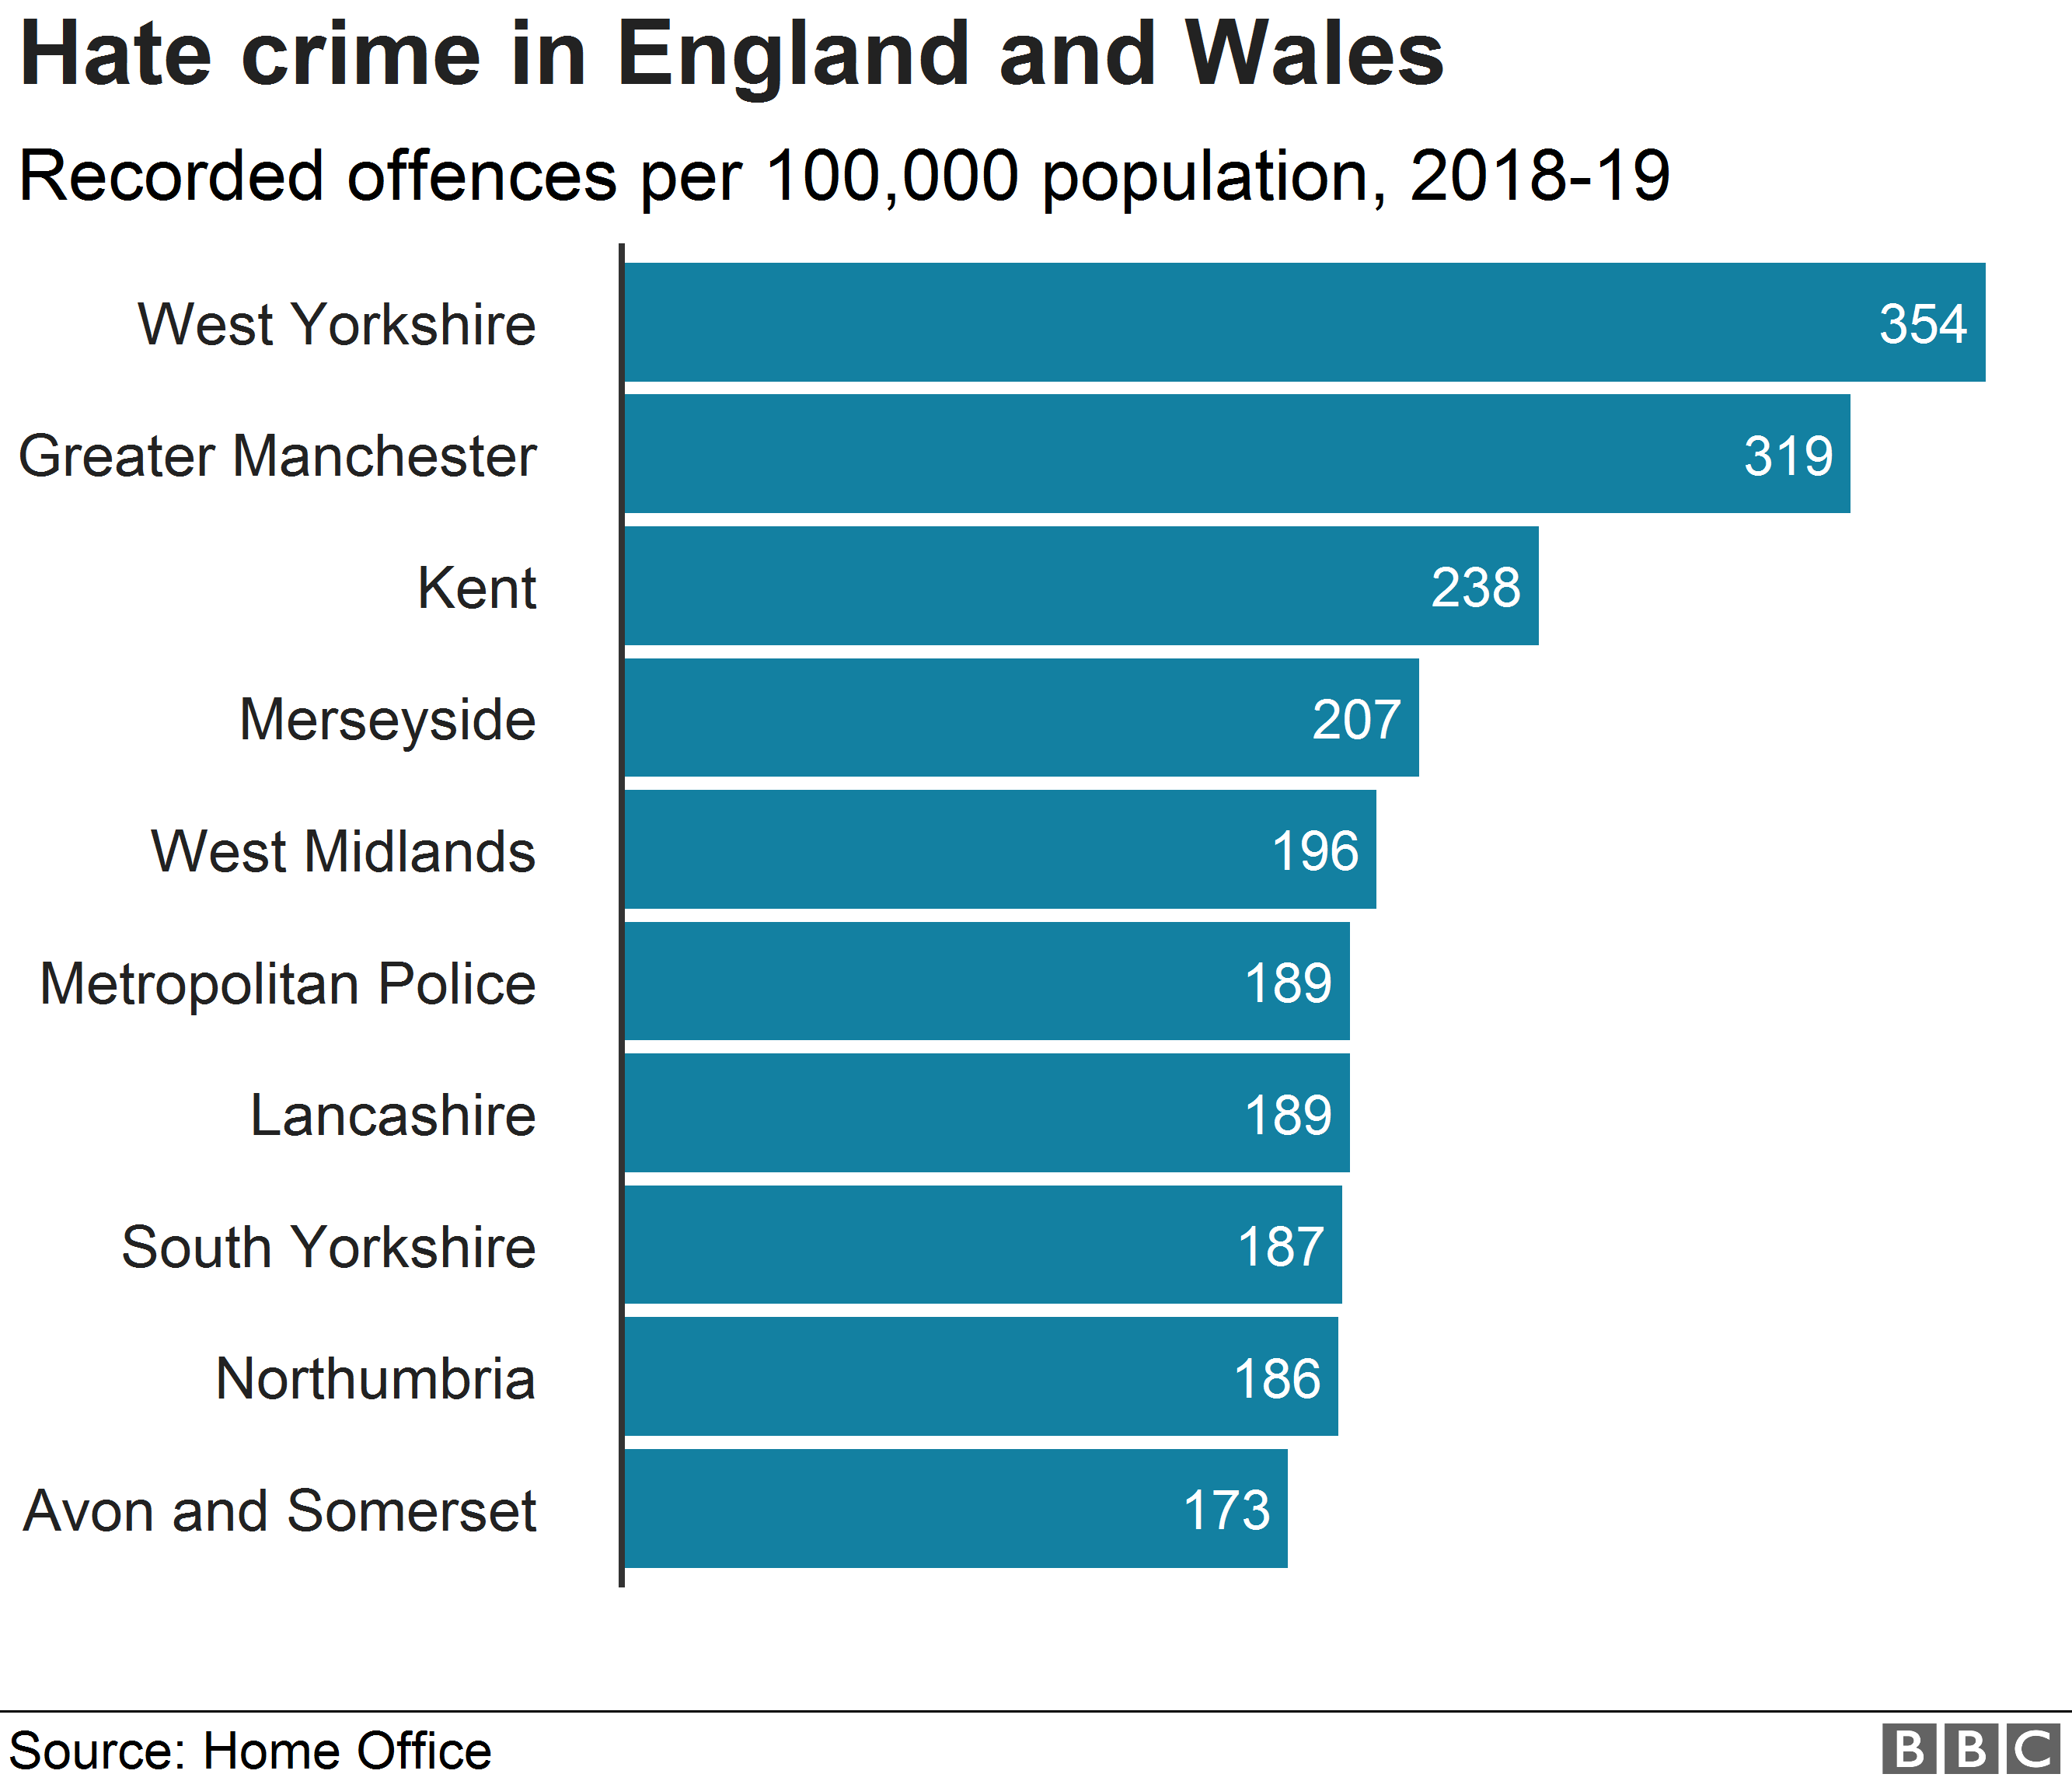 Graph comparing the number of hate crimes in different areas of England and Wales